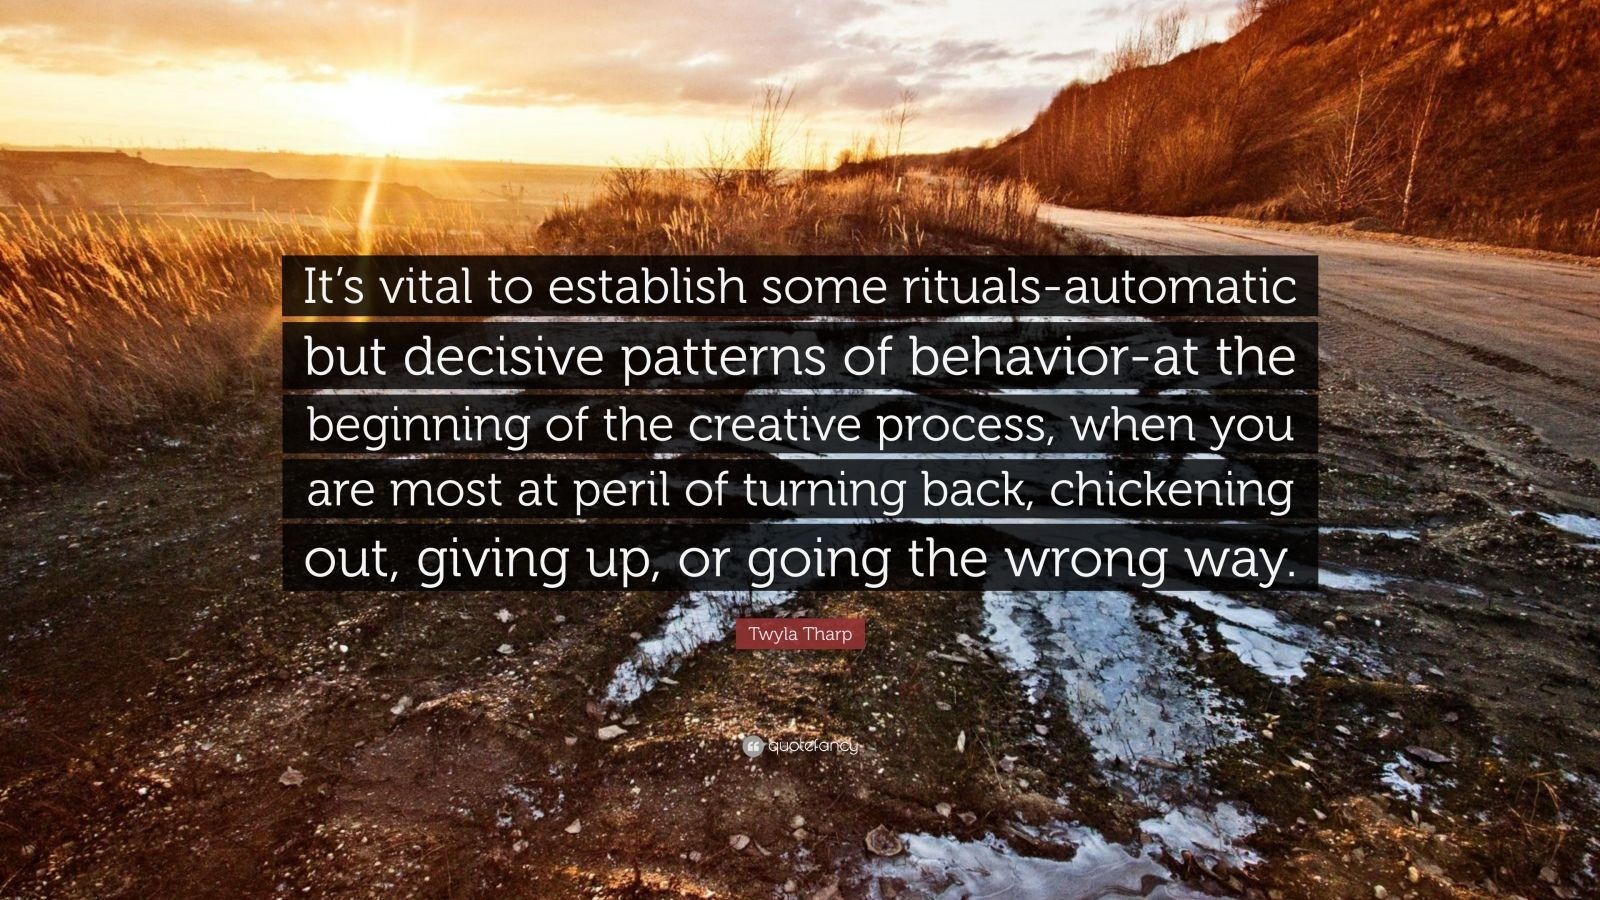 "Twyla Tharp Quote: ""It's vital to establish some rituals-automatic but decisive patterns of behavior-at the beginning of the creative process, when you are most at peril of turning back, chickening out, giving up, or going the wrong way."""